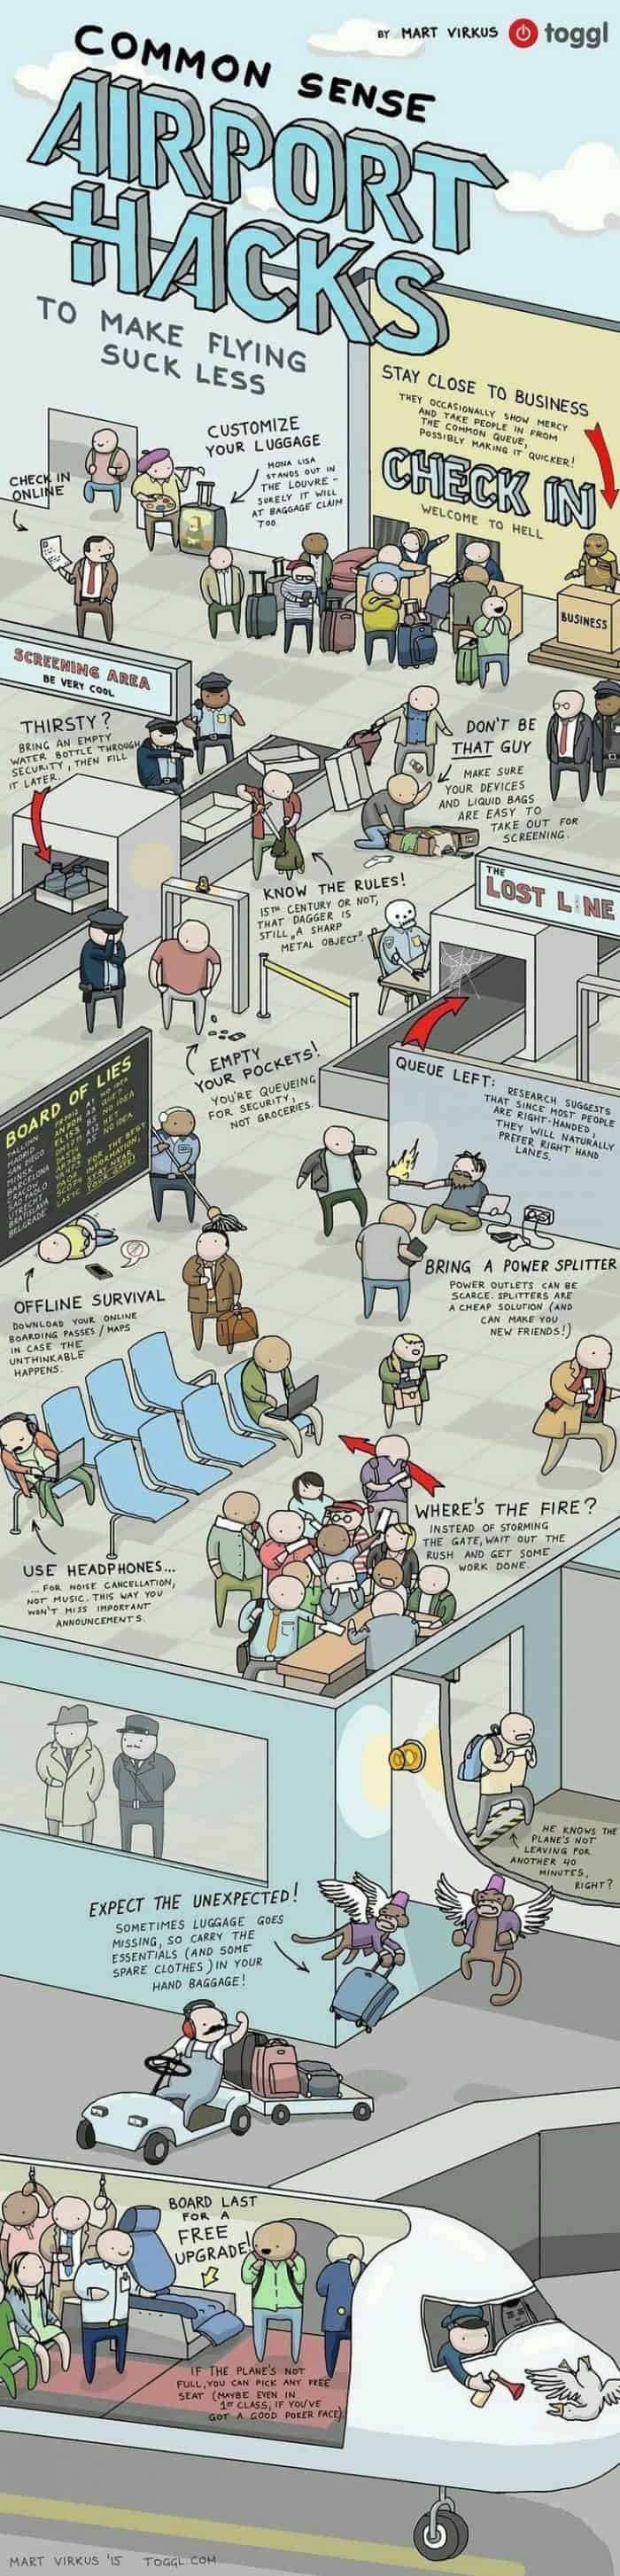 Airport hacks to help one get to their destination safely and on time.